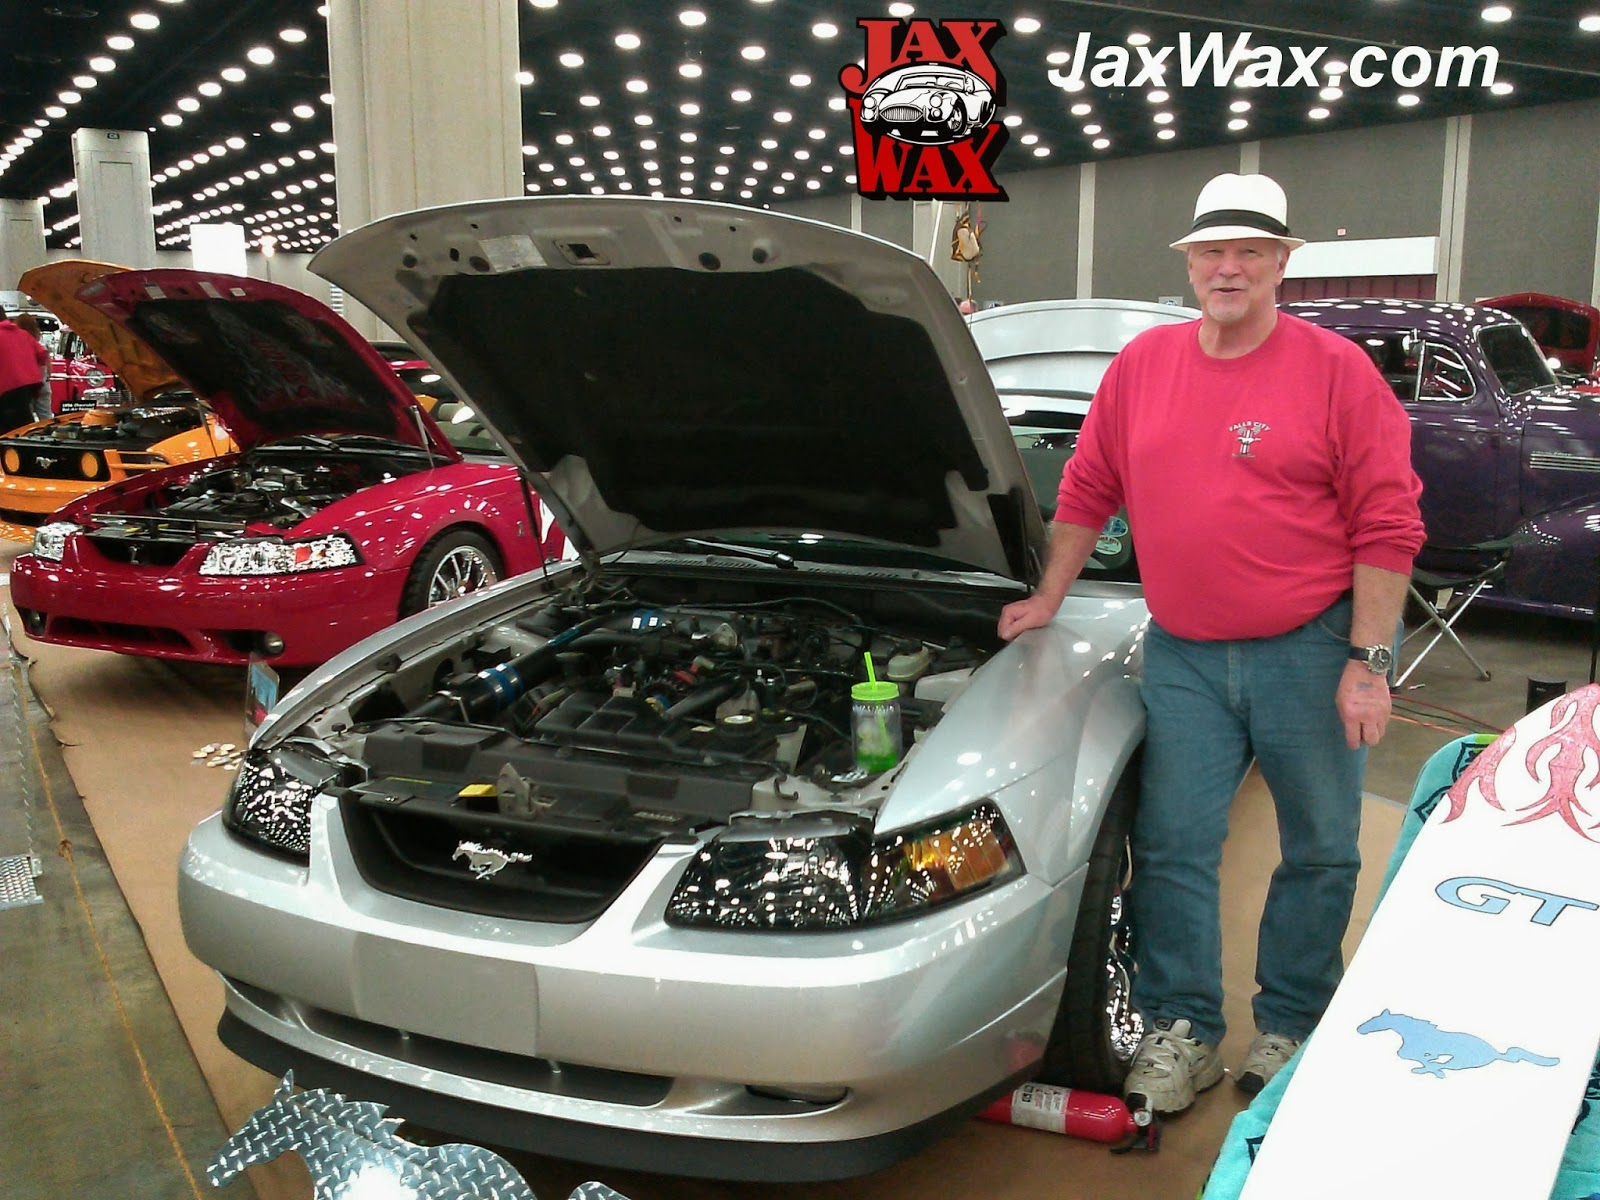 2004 Ford Mustang GT Convertible Carl Casper Auto Show Jax Wax Customer